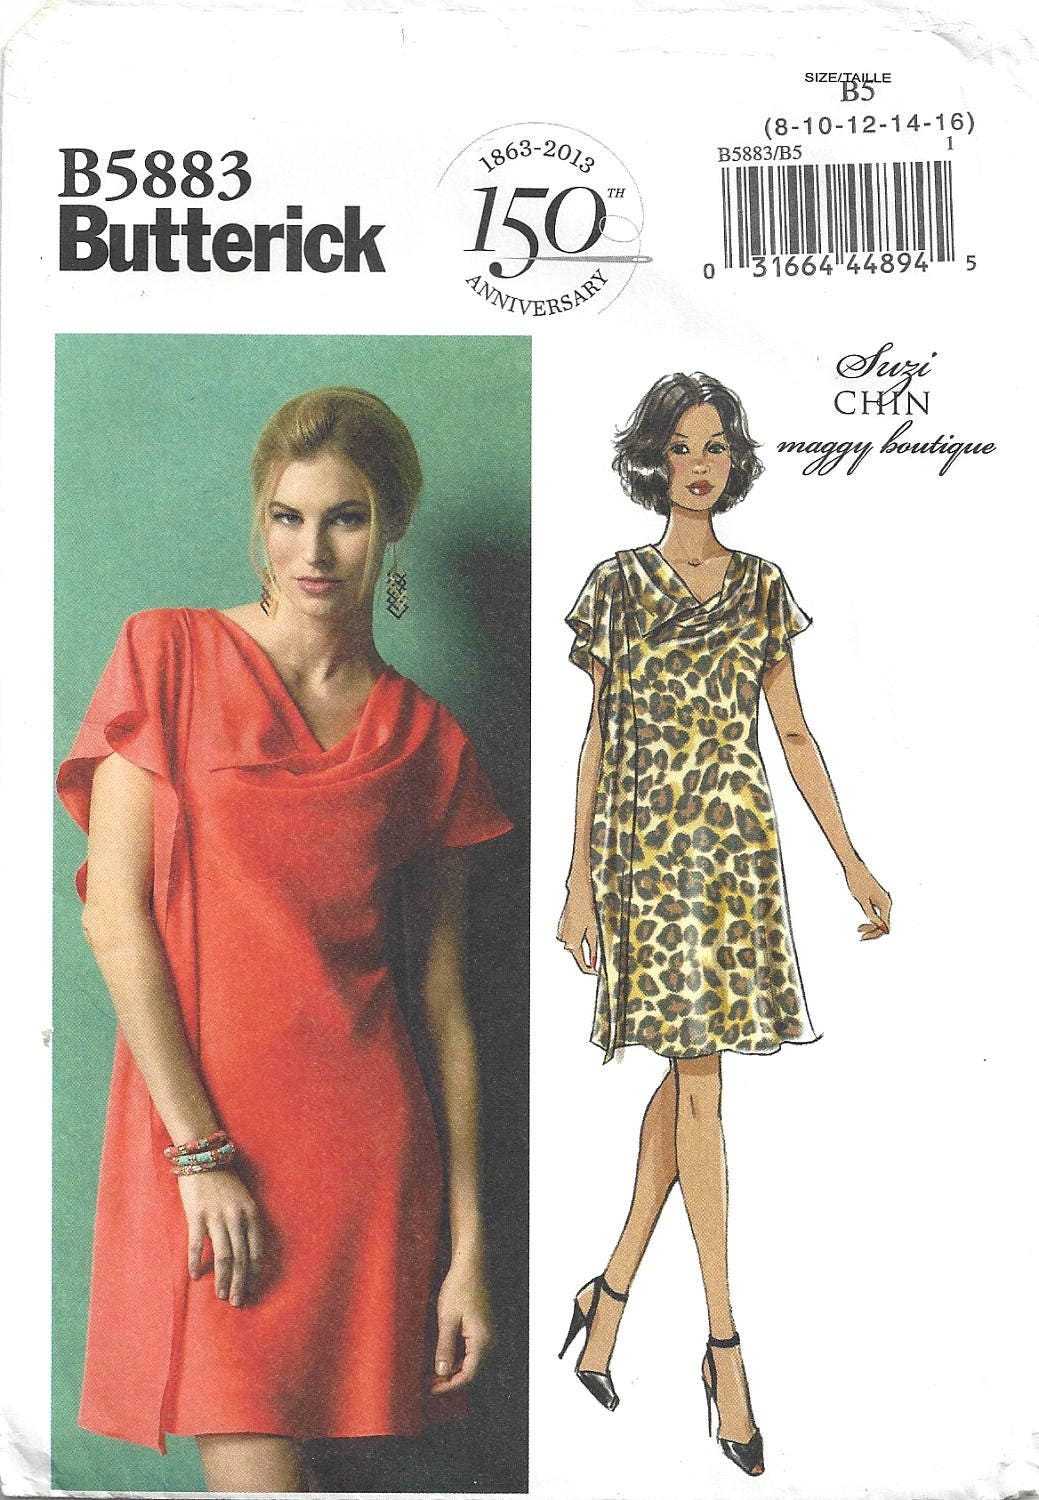 Butterick B5883 Sewing Pattern Suzi Chin for Maggy Boutique Misses Bias  Self Lined Pullover Dress sz 8 thru 16 Uncut from CrabandCrow on Etsy Studio c44e03adb